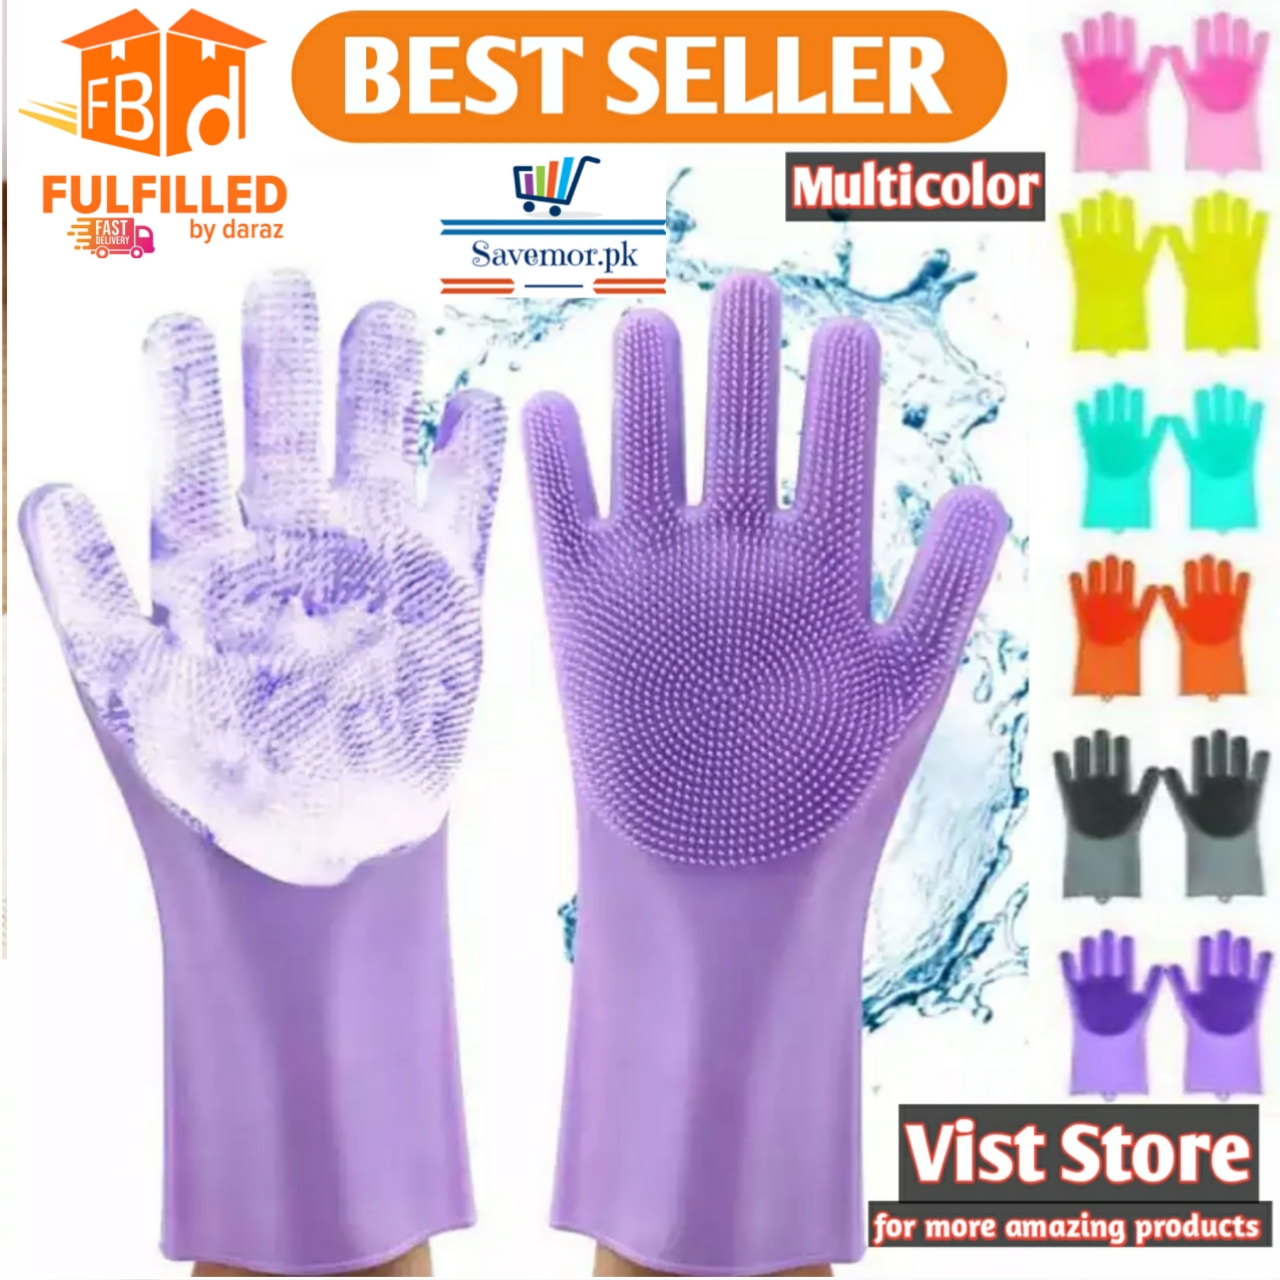 Magic Washing gloves with scrubber, silicon gloves, washing glove Gloves for kitchen / washing gloves for girls  washing gadgets  dish washing gloves  dish washer  scrub gloves kitchen accessories  kitchen tools